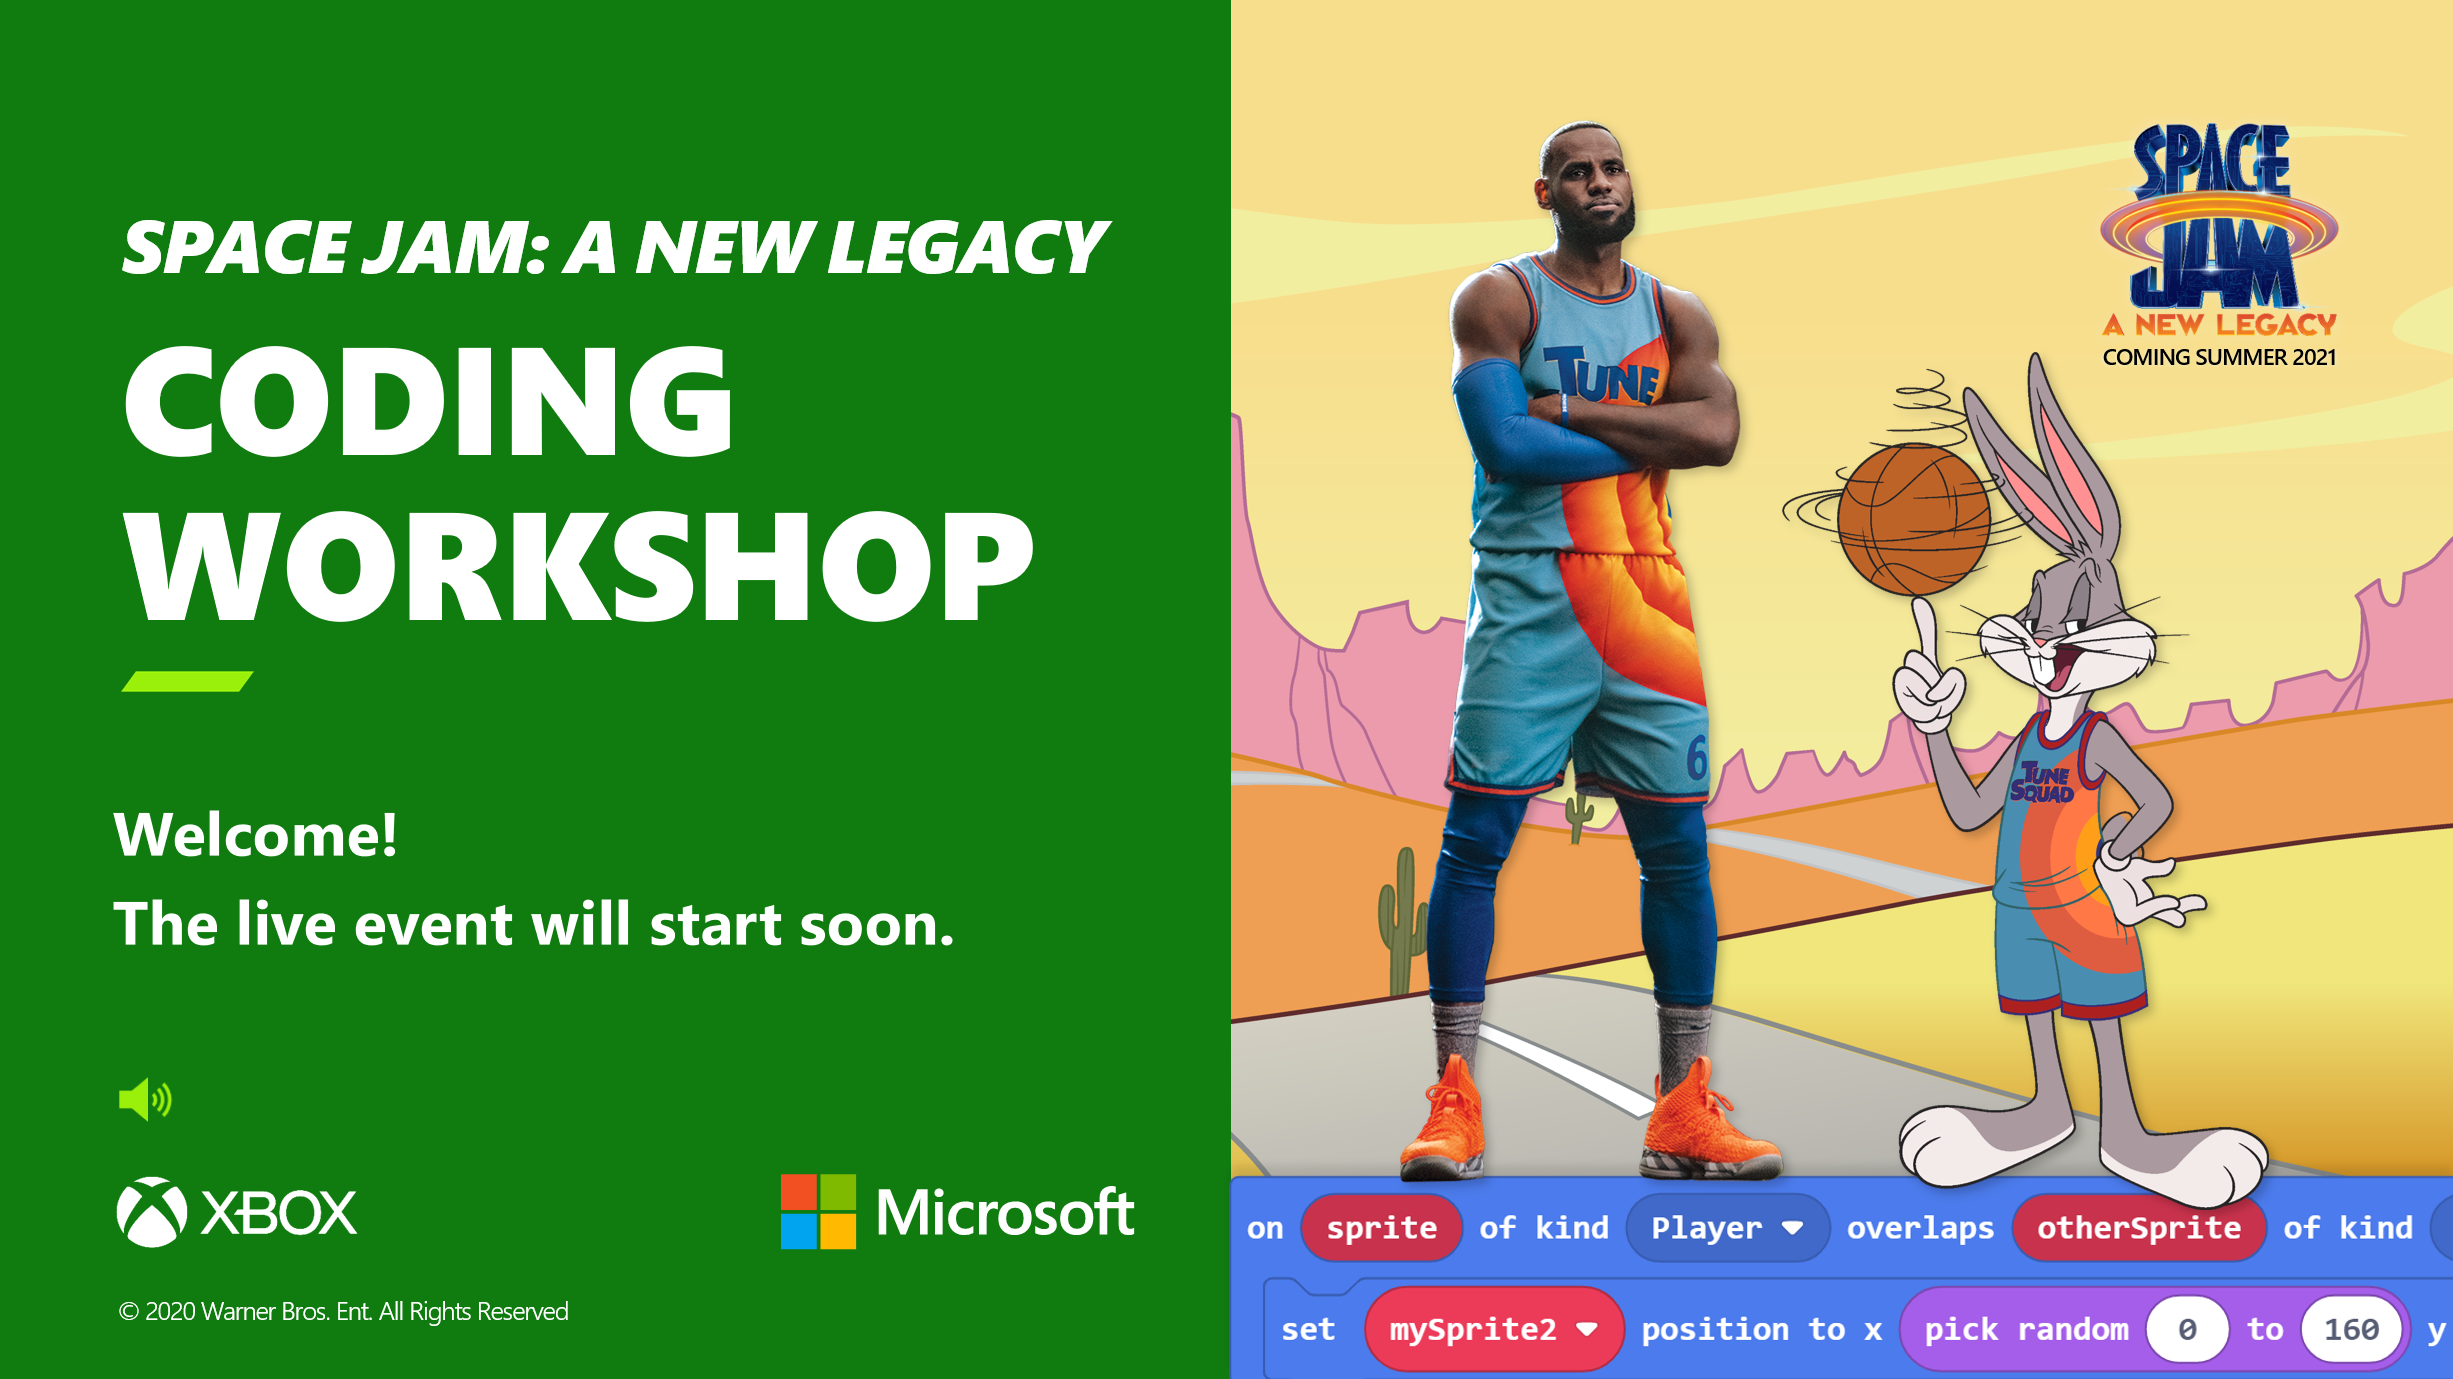 LeBron James & Xbox Are Teaming Up To Help Teach Kids Coding